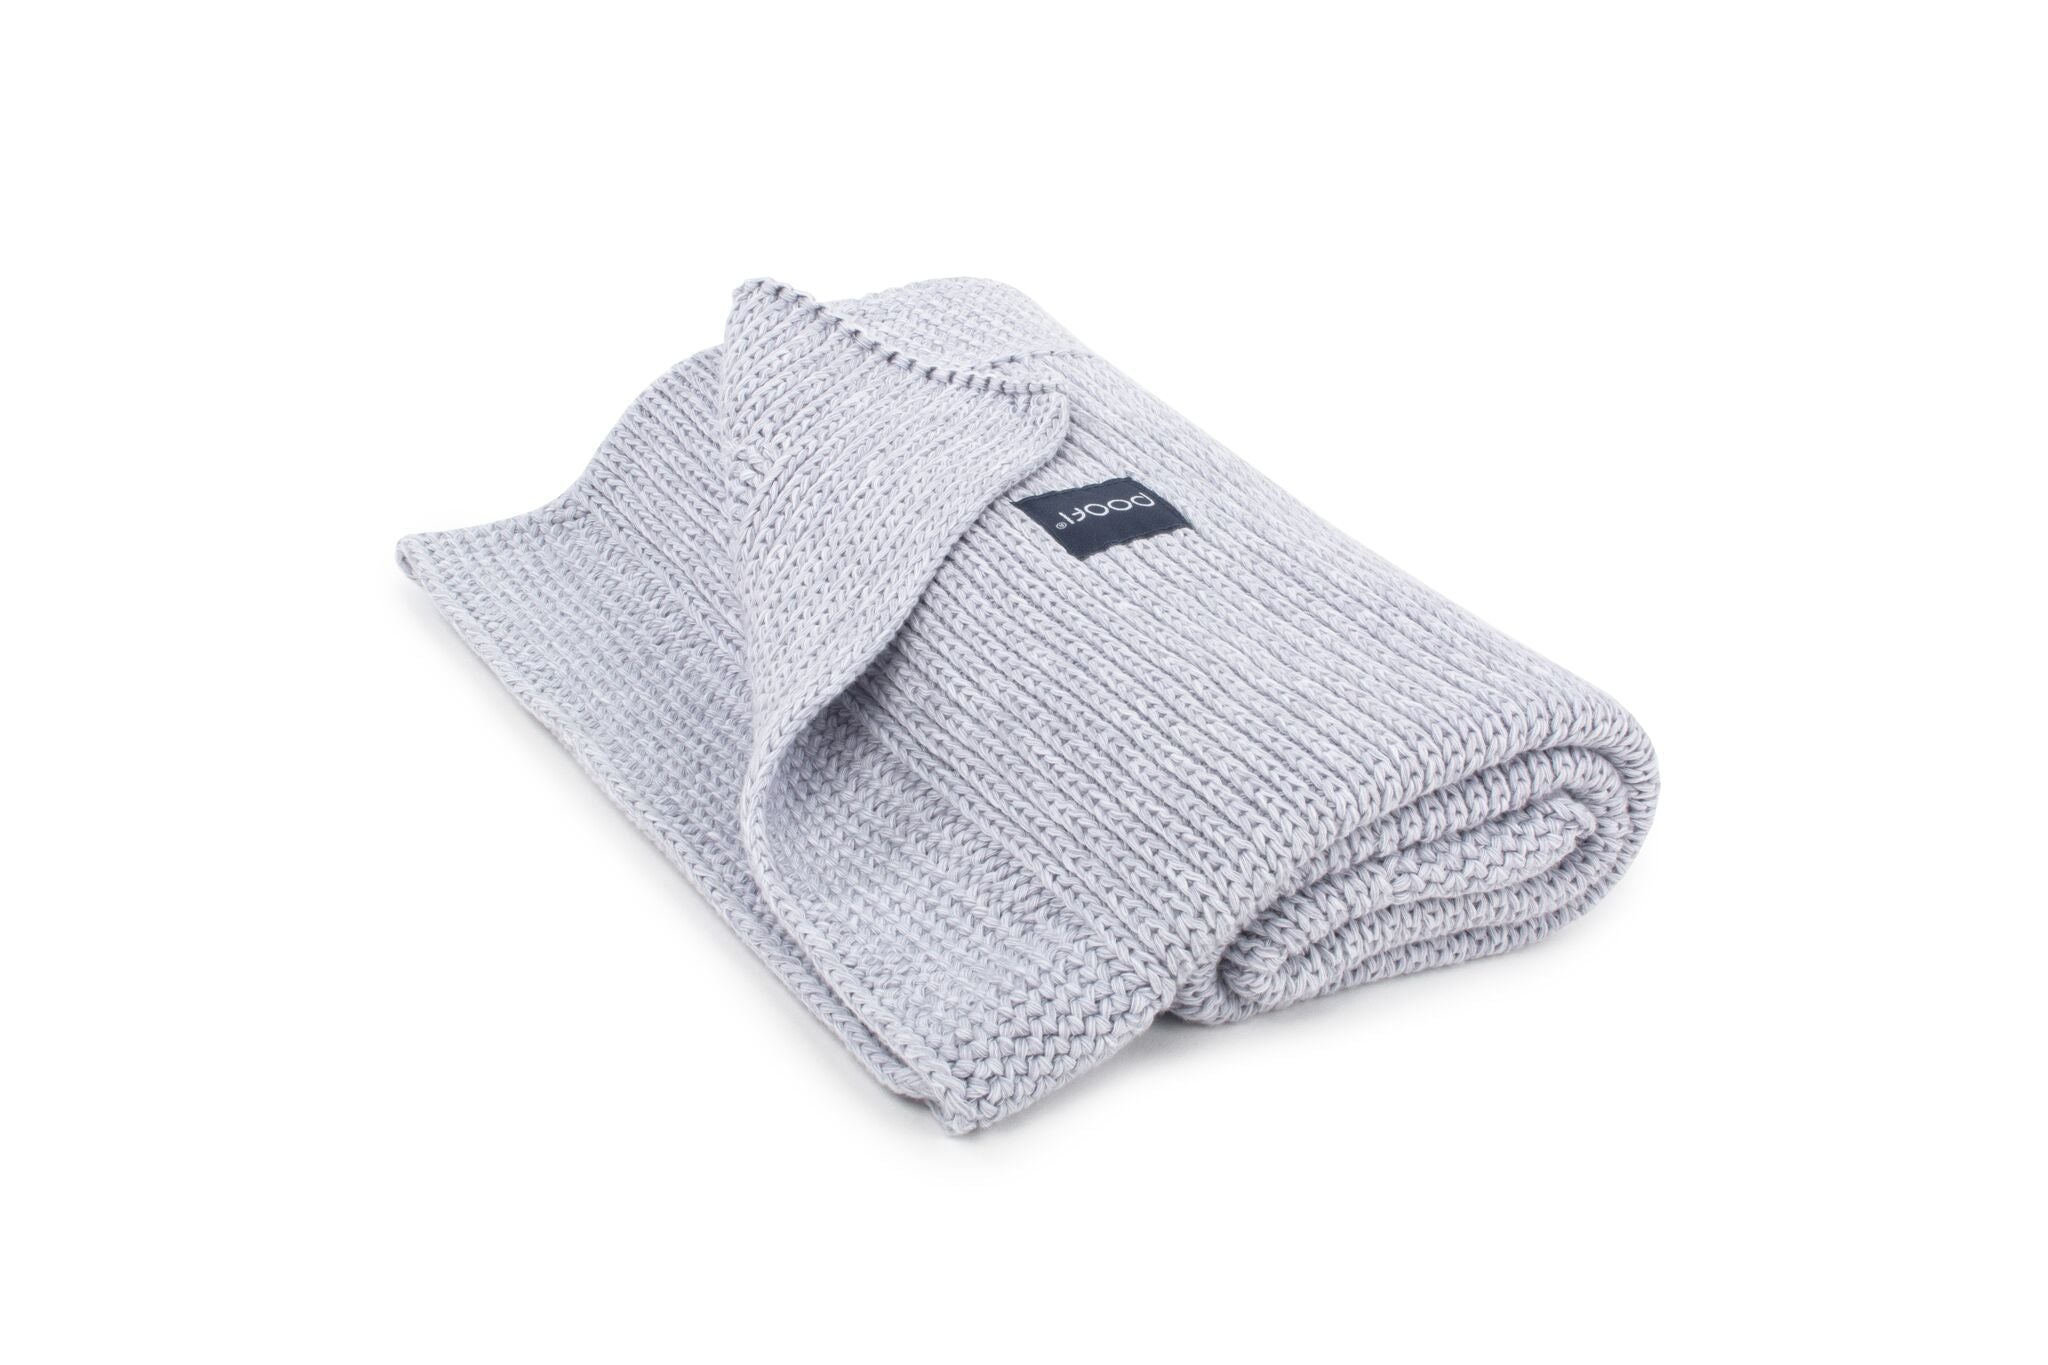 KNITTED ORGANIC COTTON BLANKET LIGHT GRAY